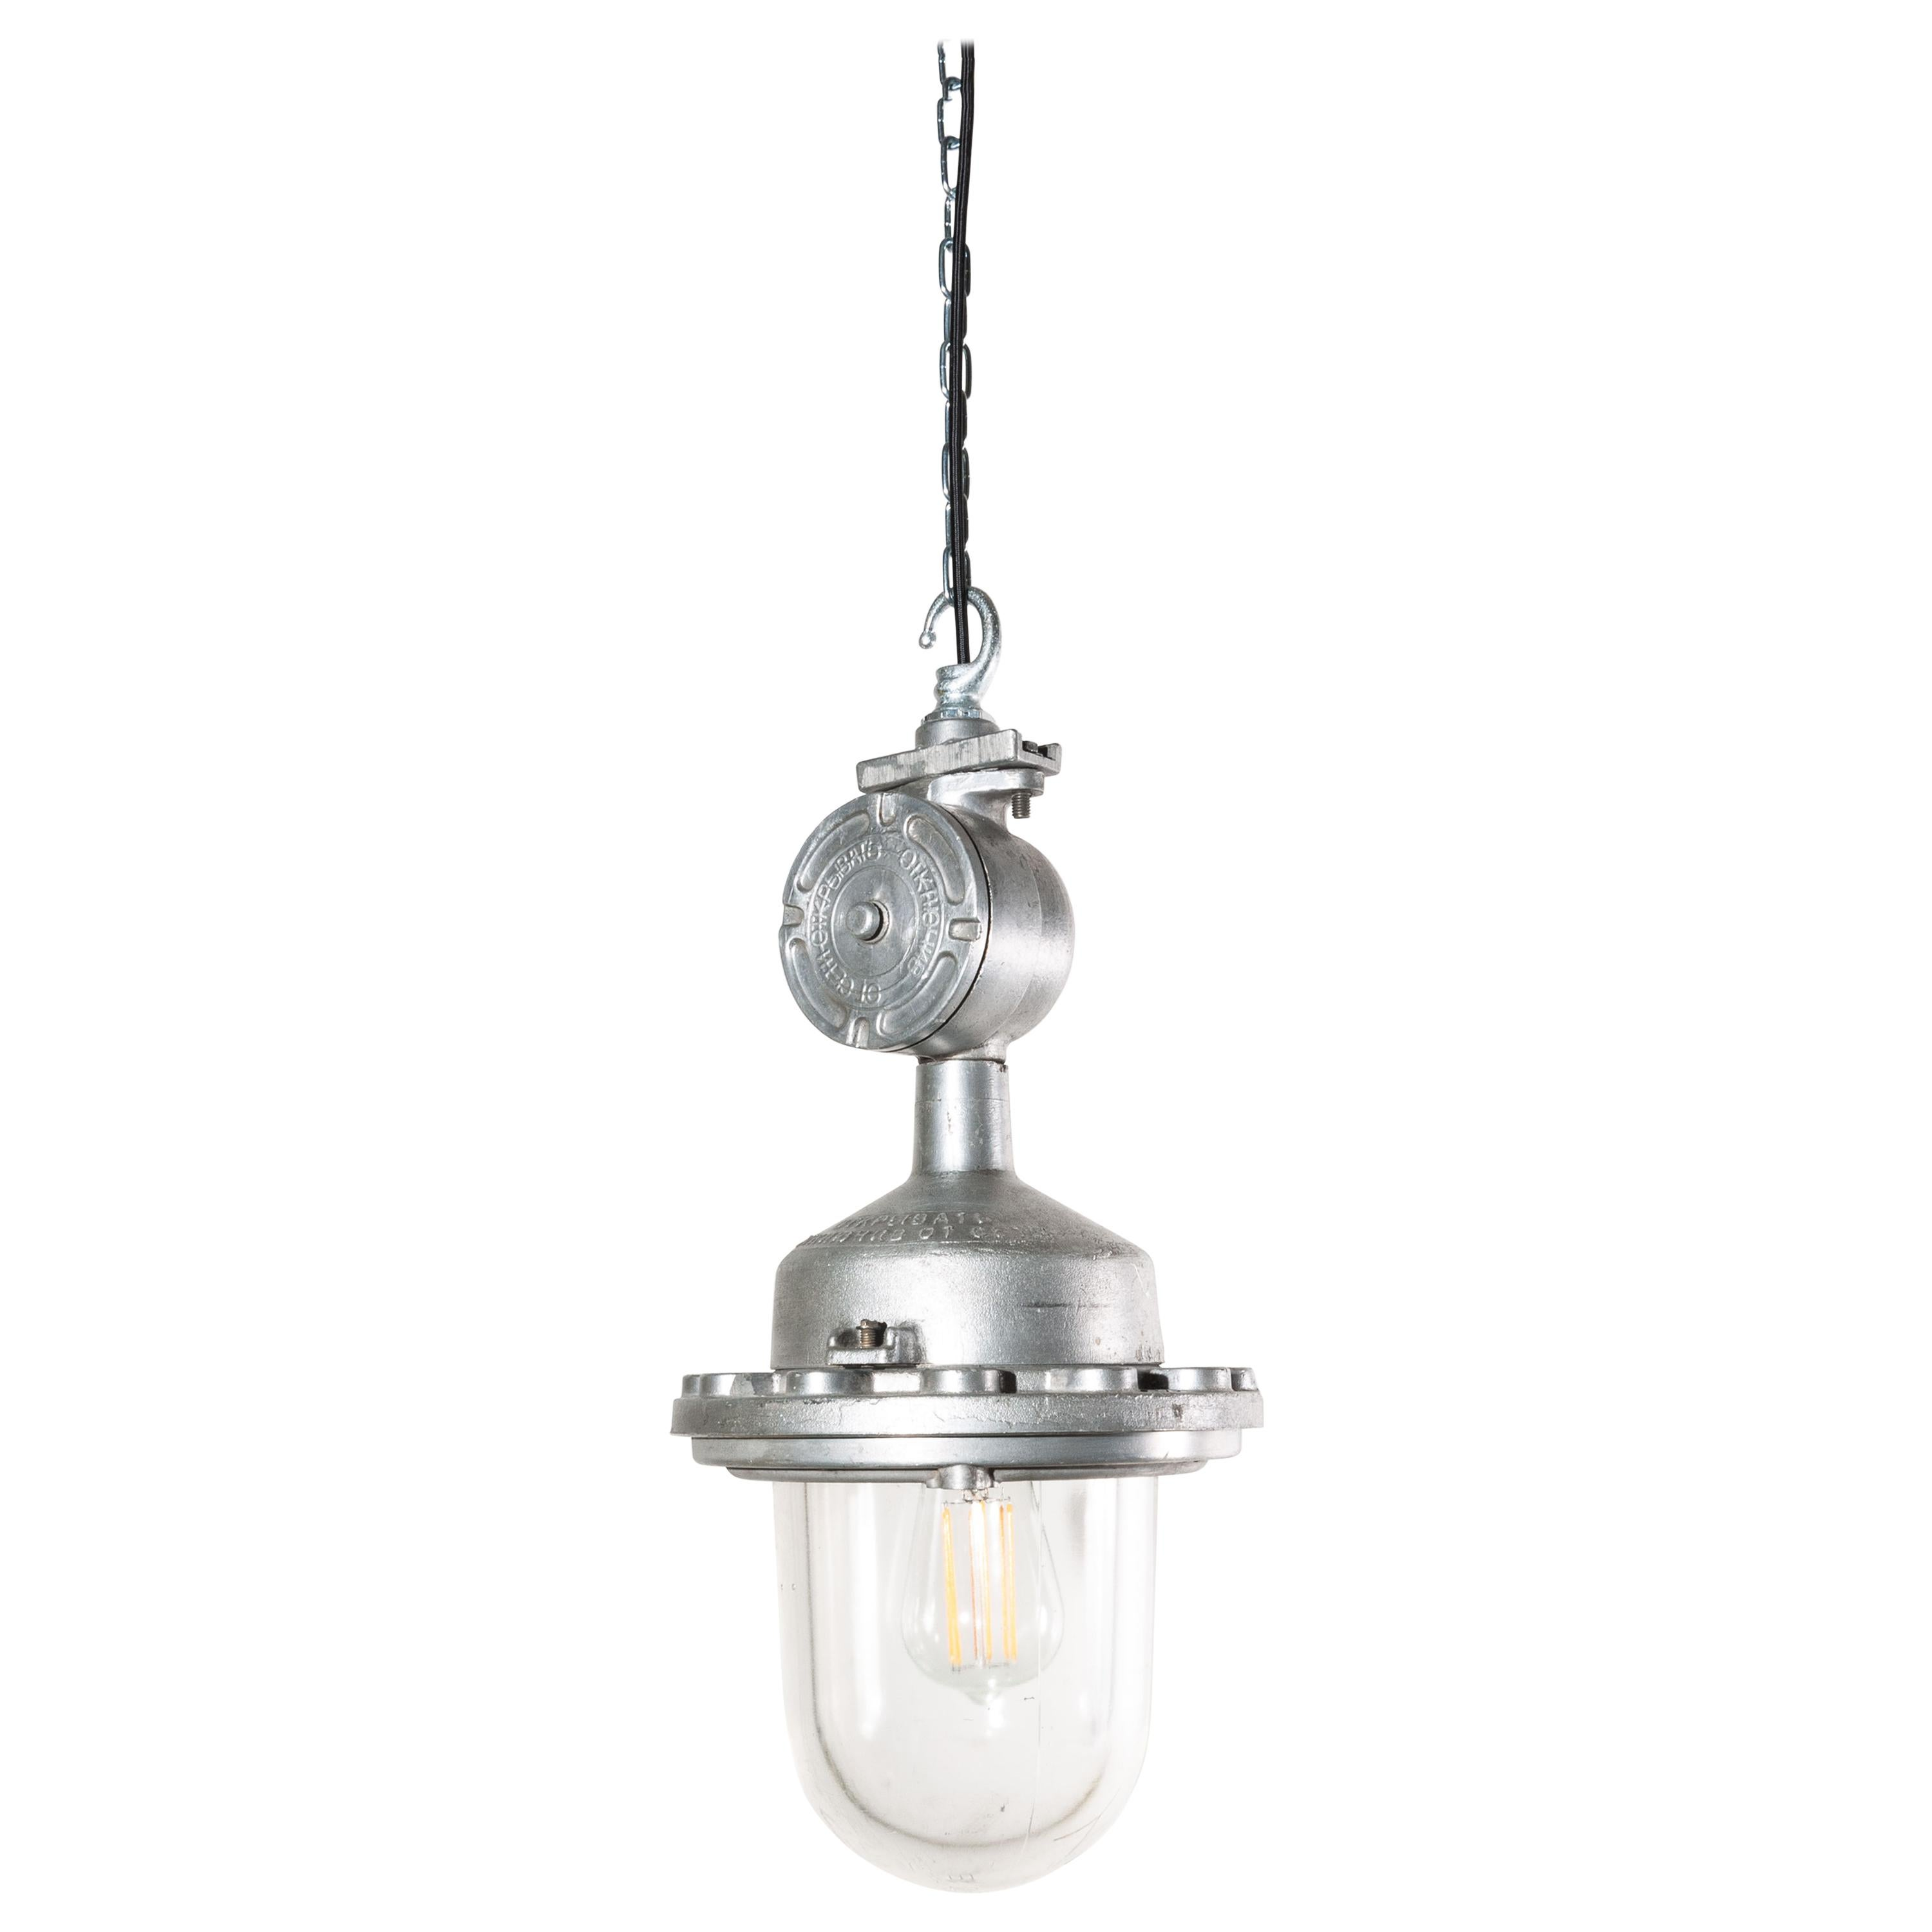 1960s Industrial Explosion Proof Ceiling Pendant Lamps/Lights, with Glass Dome